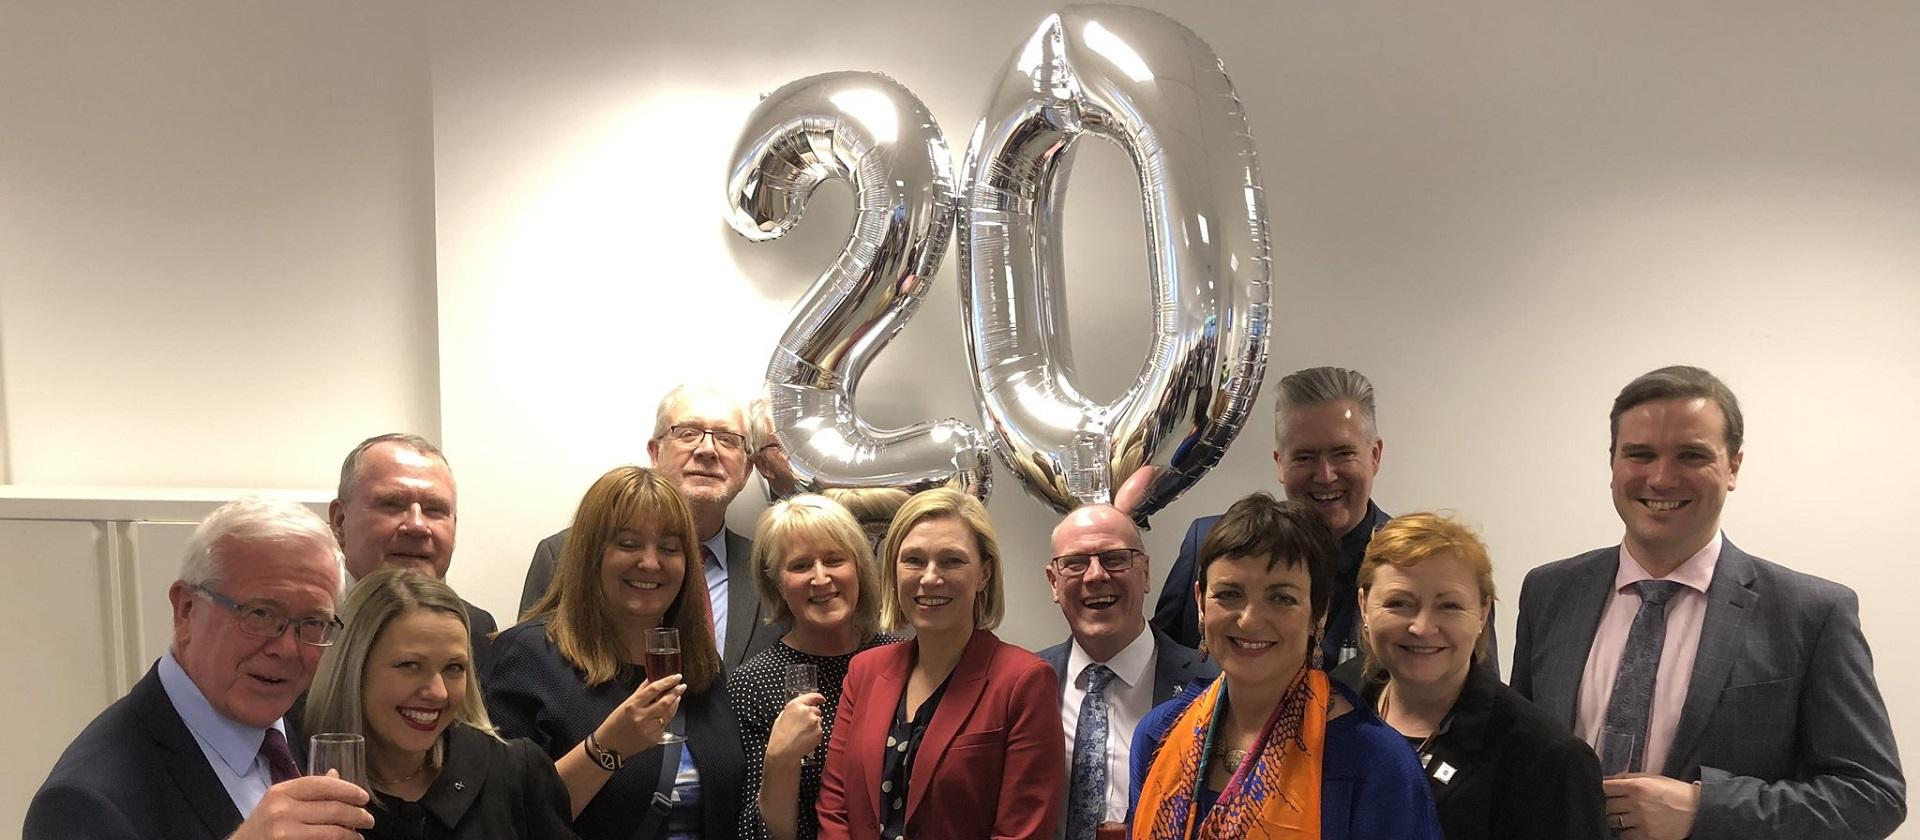 Celebrating 20 years since Scottish Parliament reconvened